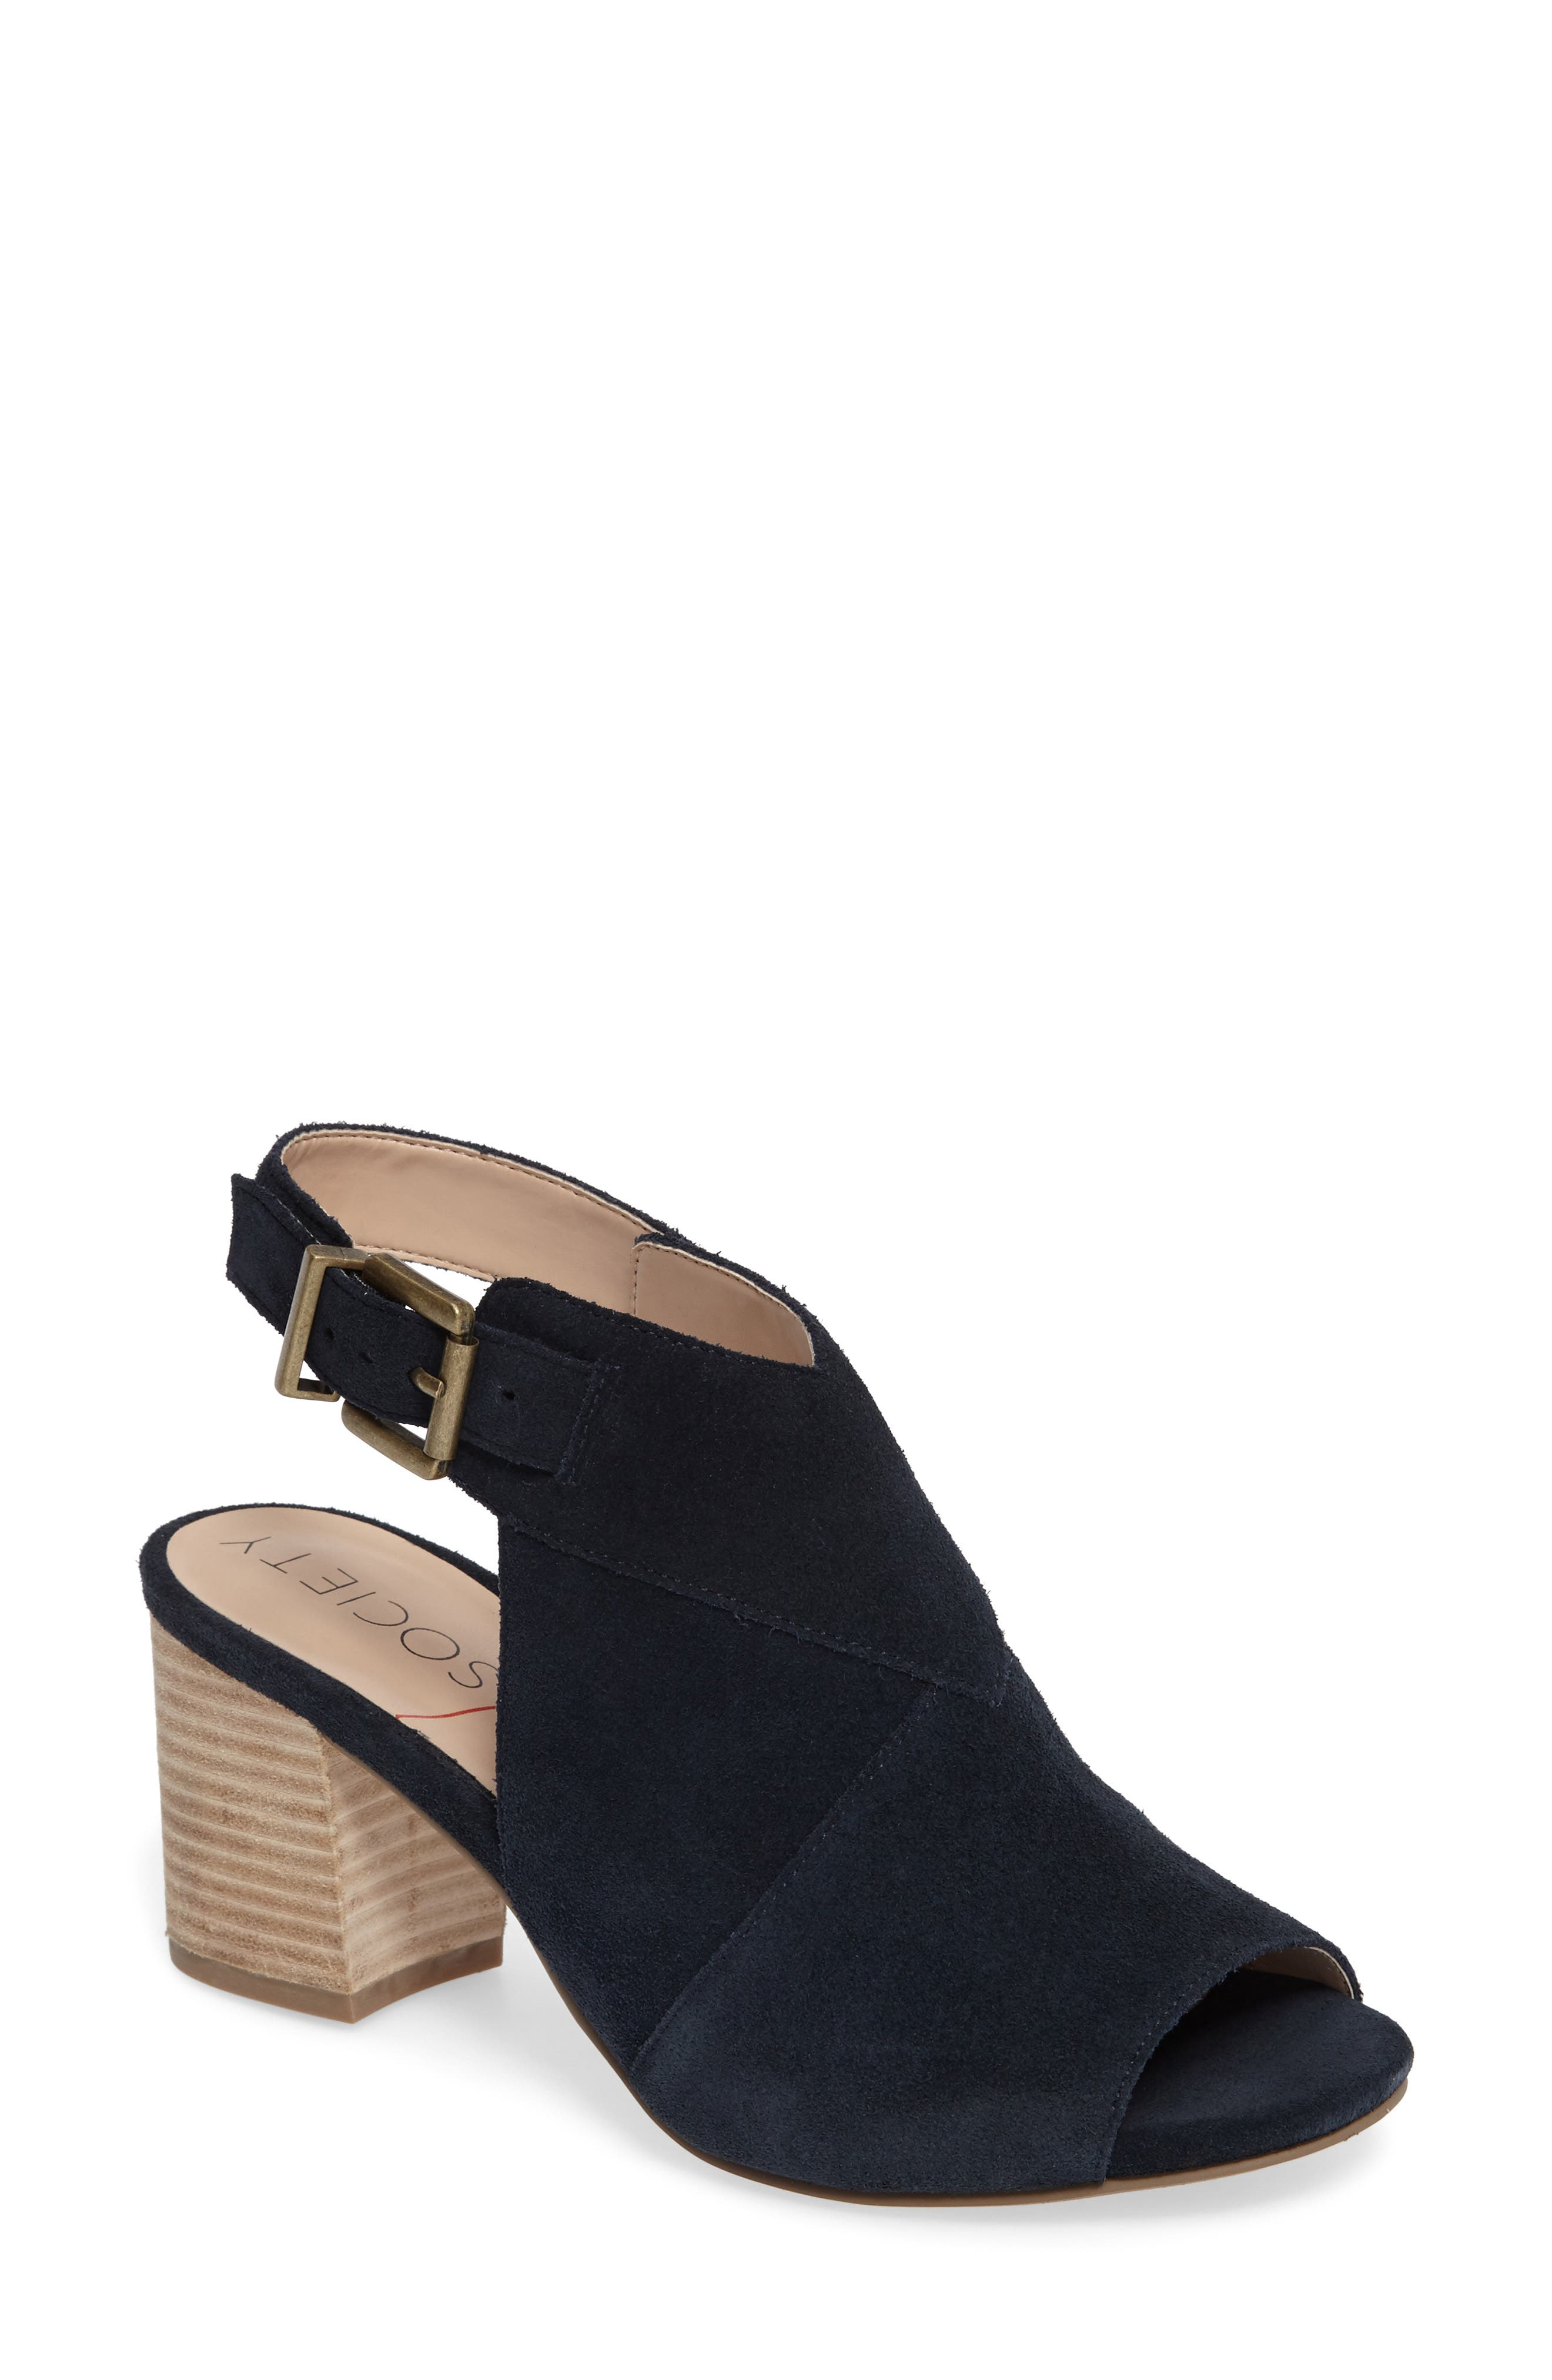 Zuma Peep Toe Bootie,                             Main thumbnail 1, color,                             Ink Navy Suede